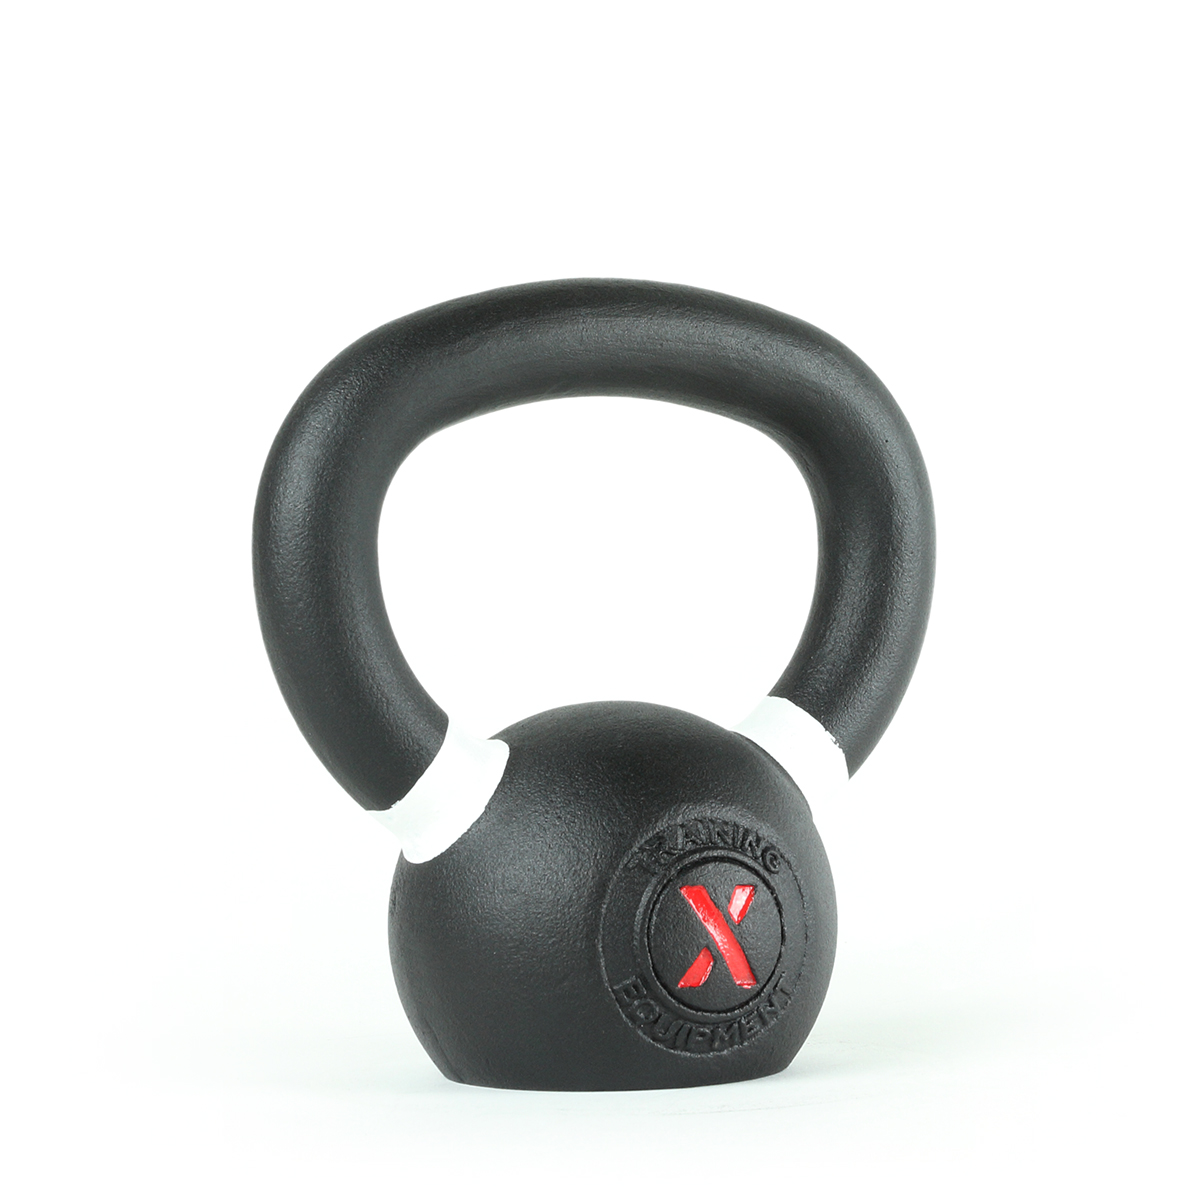 Premium Kettlebell 9lb / 4kg - Out of Stock